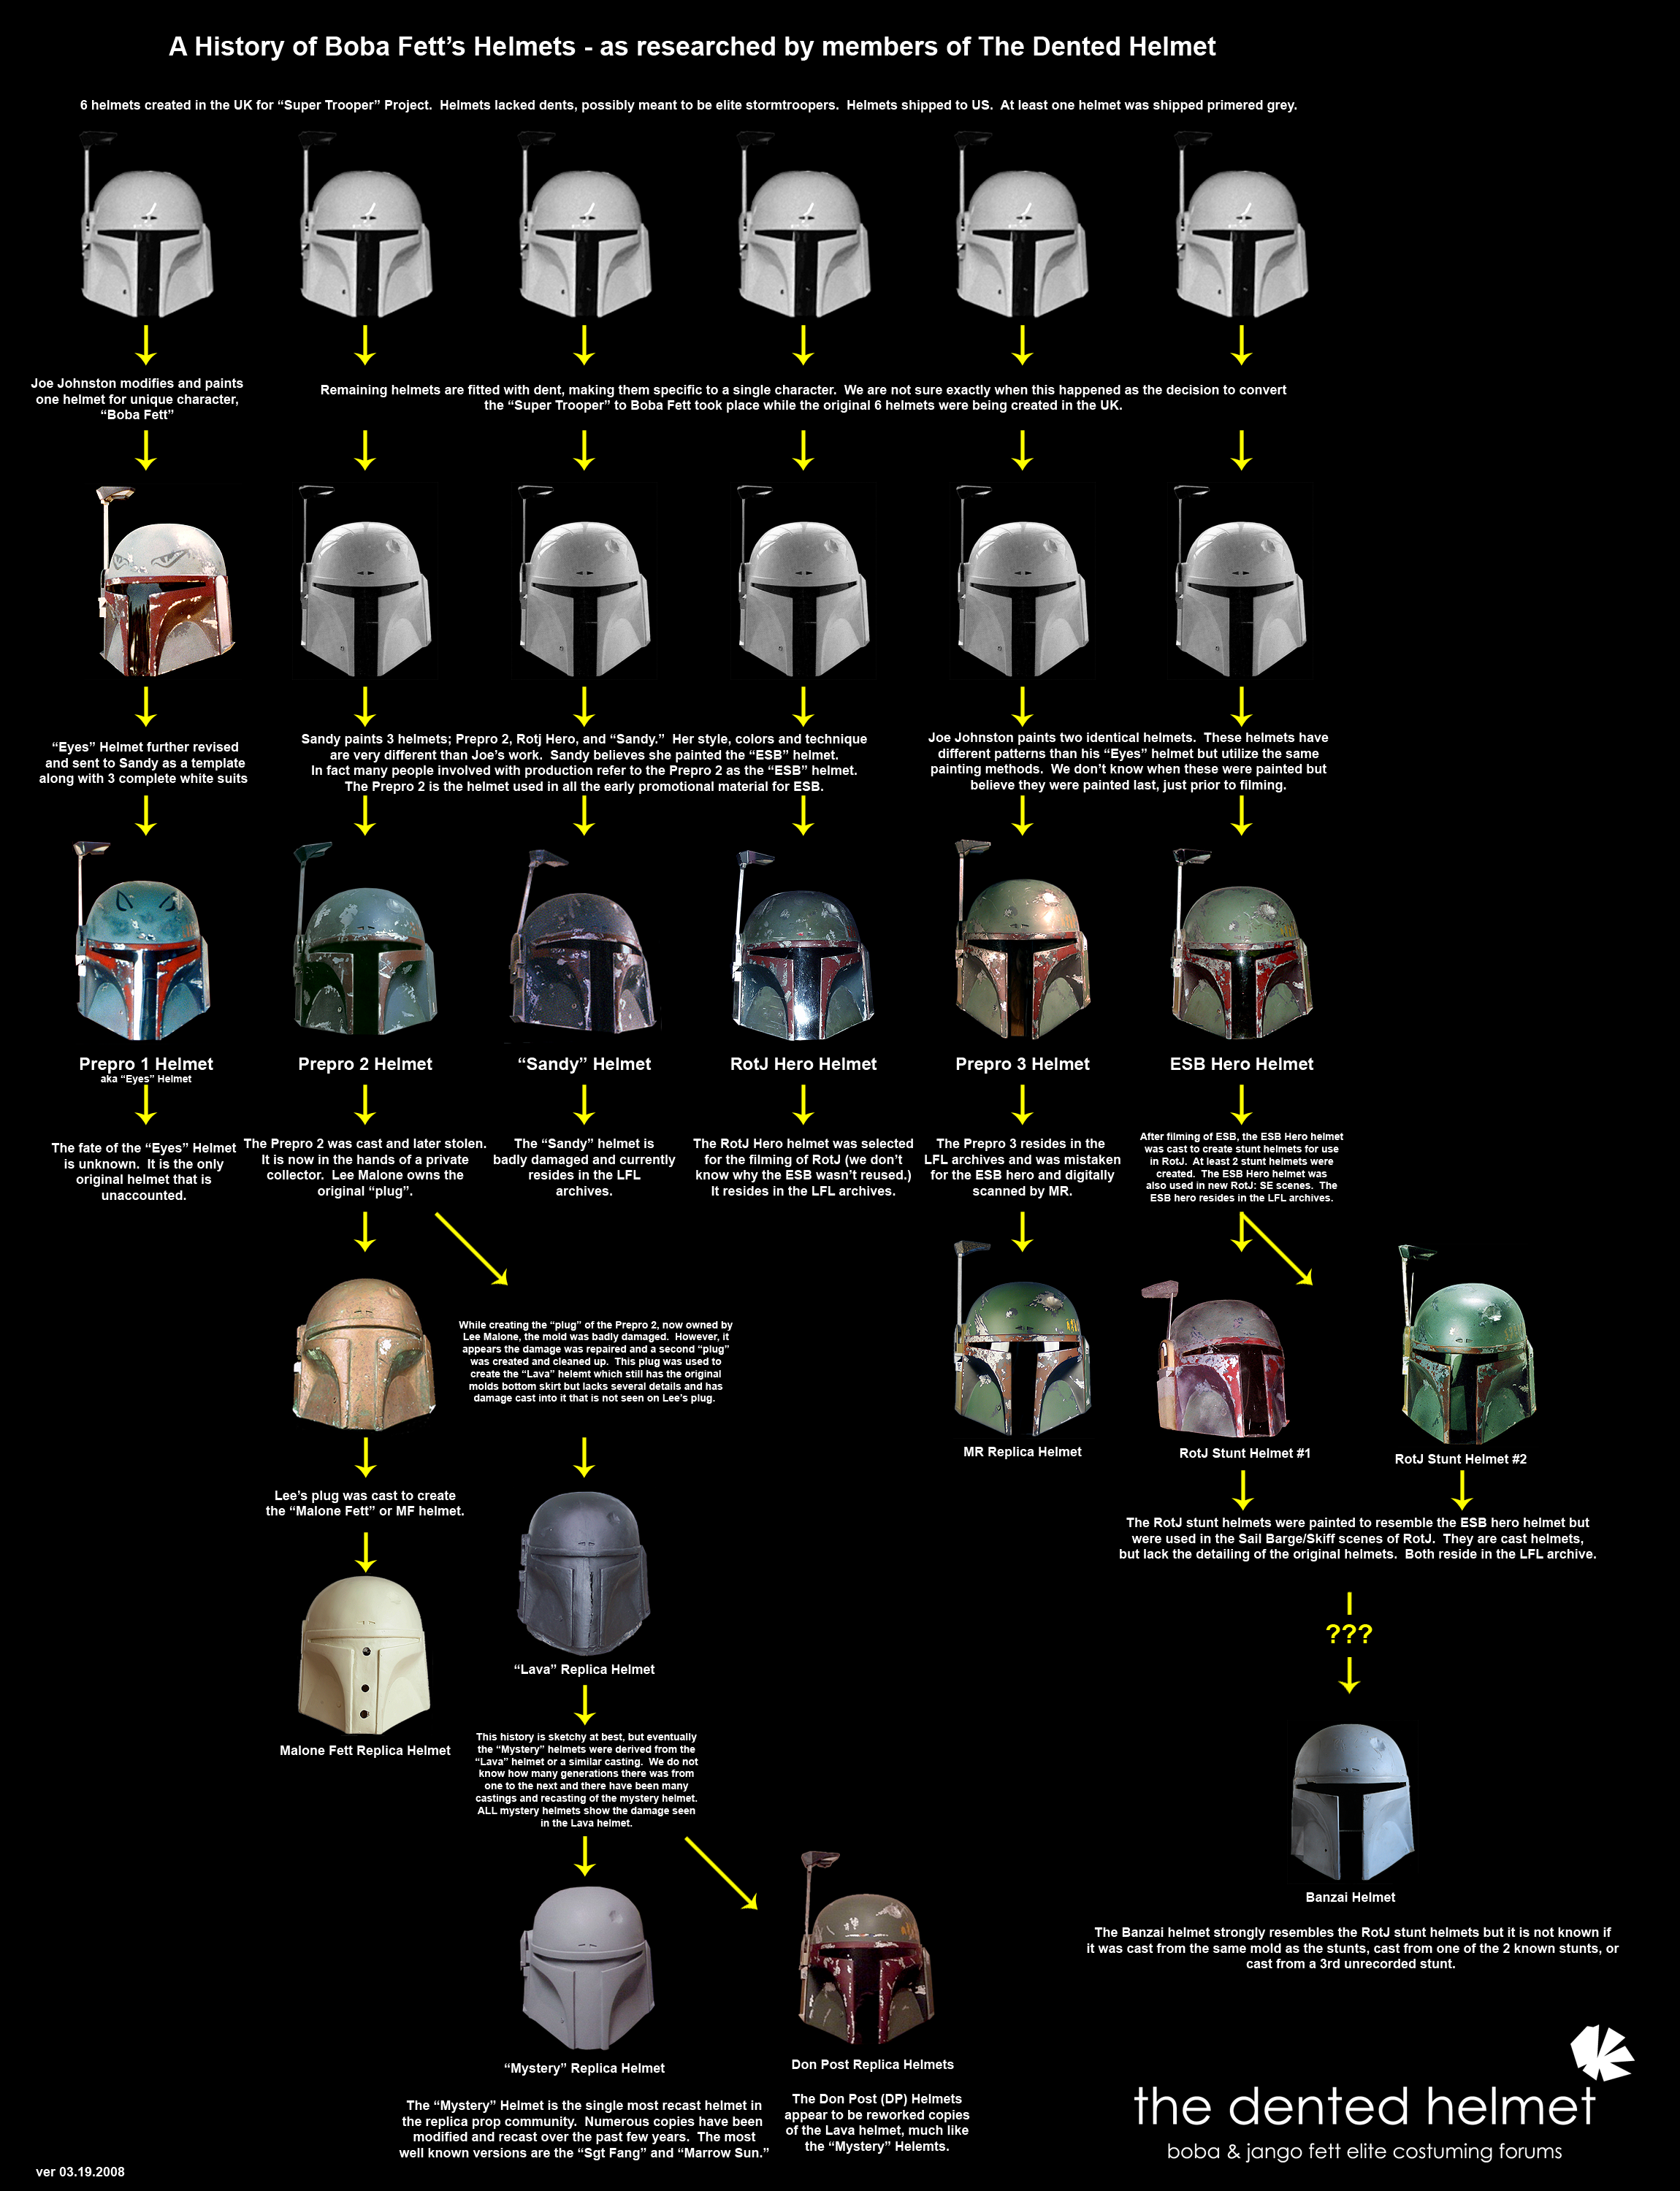 nfl helmet game of thrones with The History Of Boba Fetts Helmets Infographic on Showthread besides 41 Pictures Amazing Body Paint Amazing Bodies as well Usa Basketball Team Wallpaper besides Denver Broncos Horse Logo 1920x1080 168 Hd in addition Pittsburgh Steelers Honor Chuck Noll Helmet Sticker.